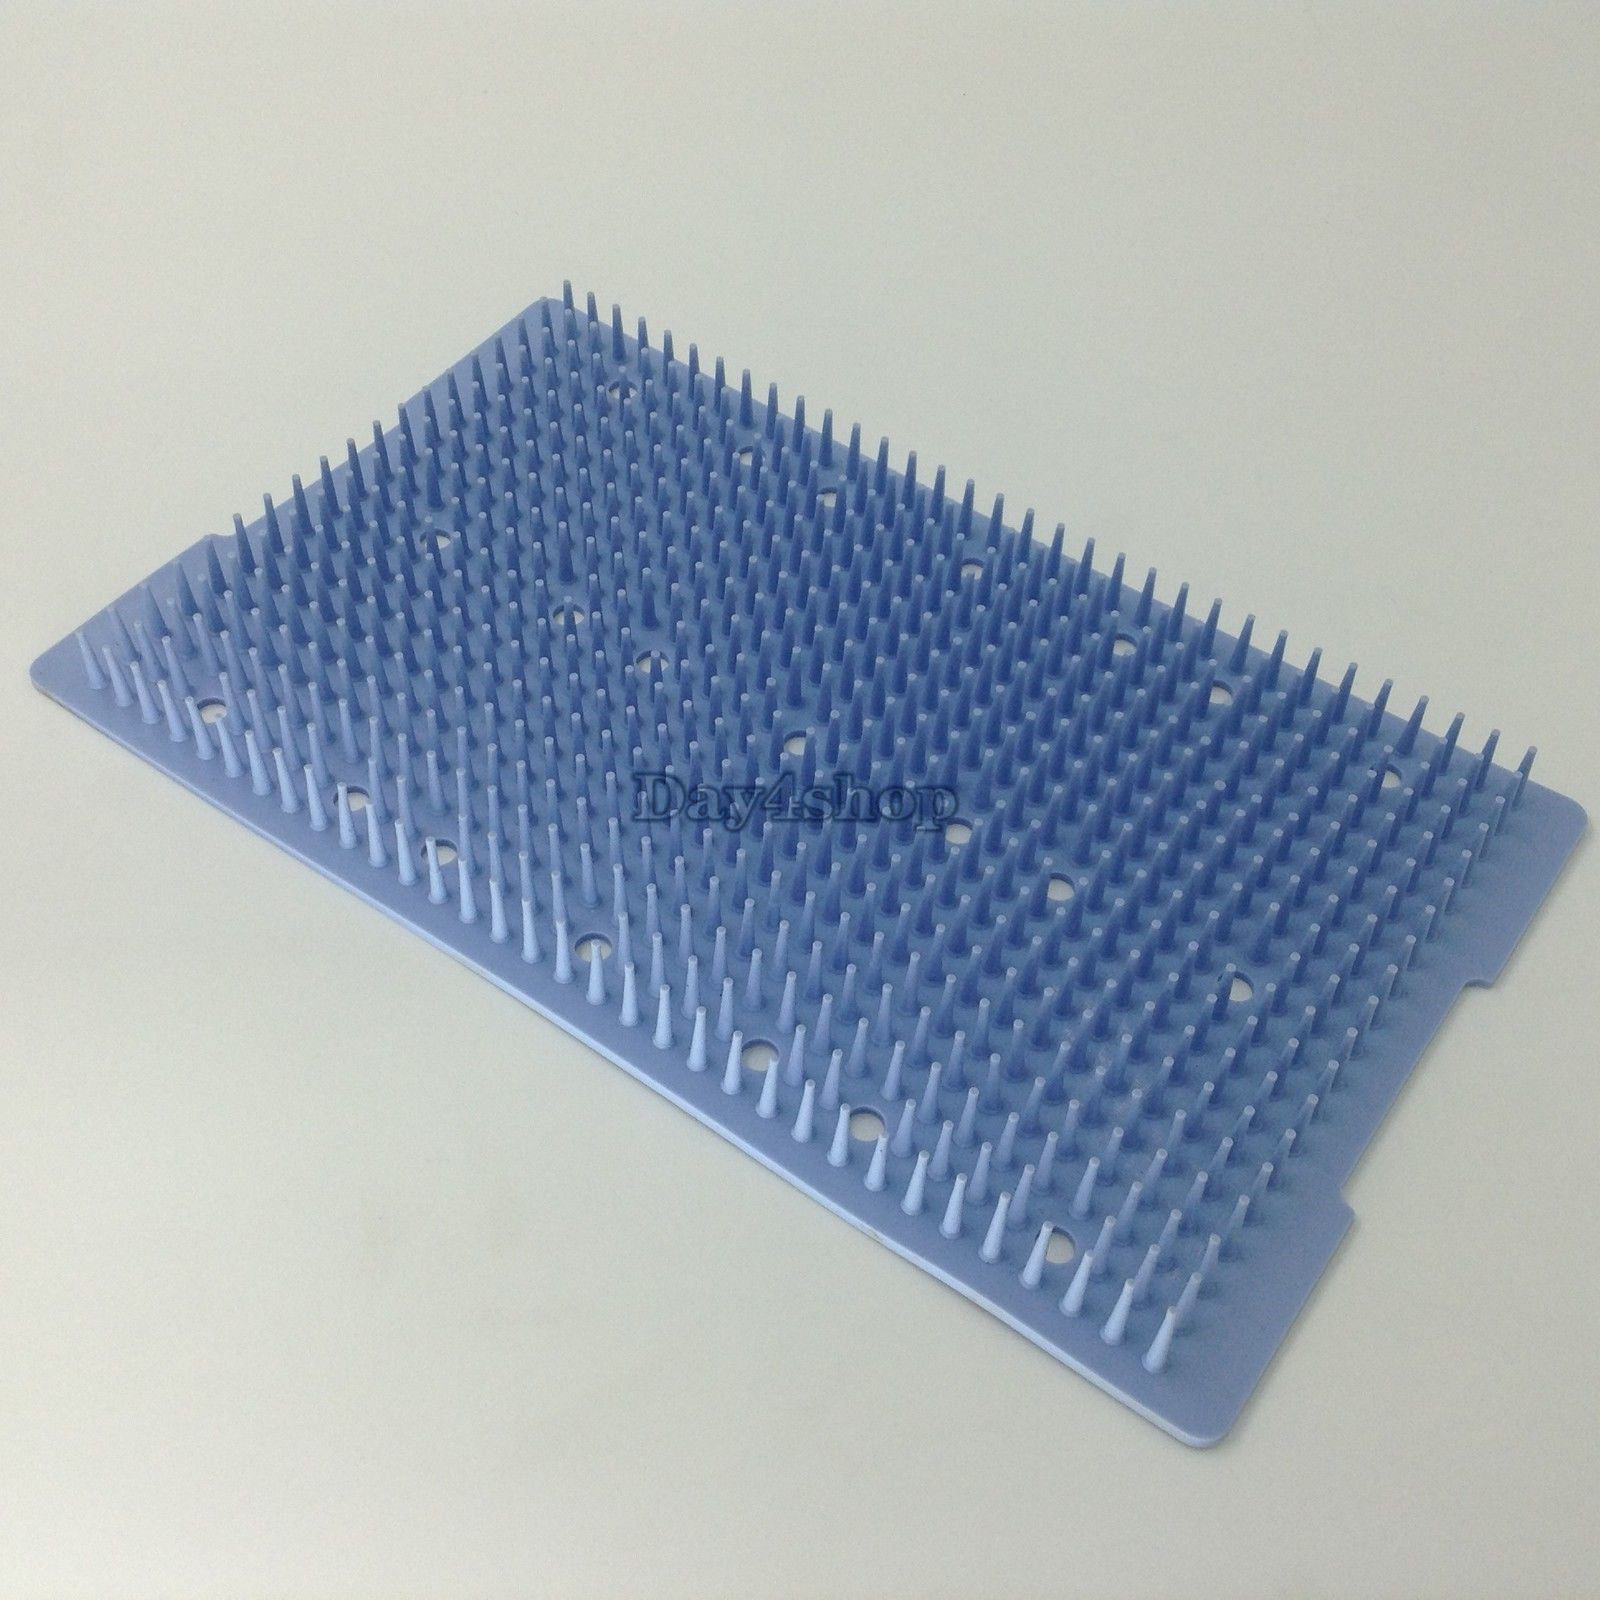 Best Middle Silicone Mat Silicone Mats For Sterilization Tray Case Box Surgical